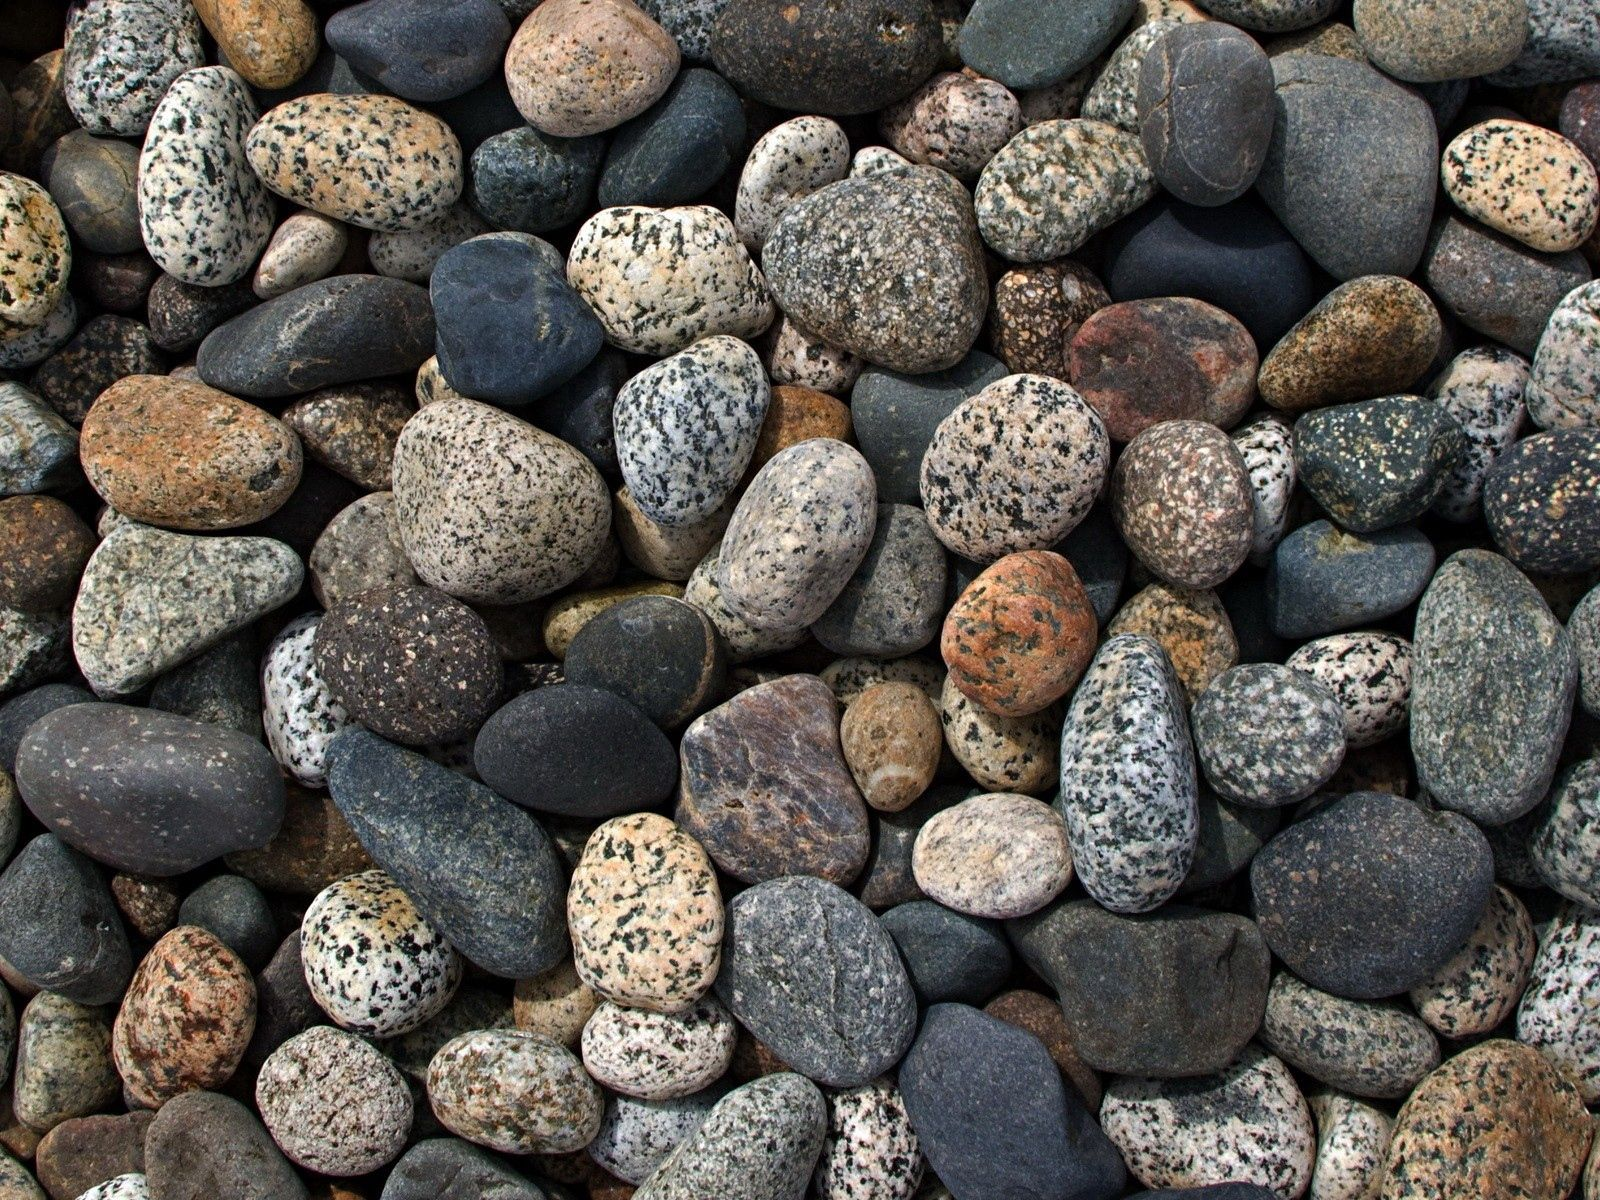 85032 download wallpaper Nature, Stones, Shapes, Shape, Points, Point, Form, Colors, Color screensavers and pictures for free